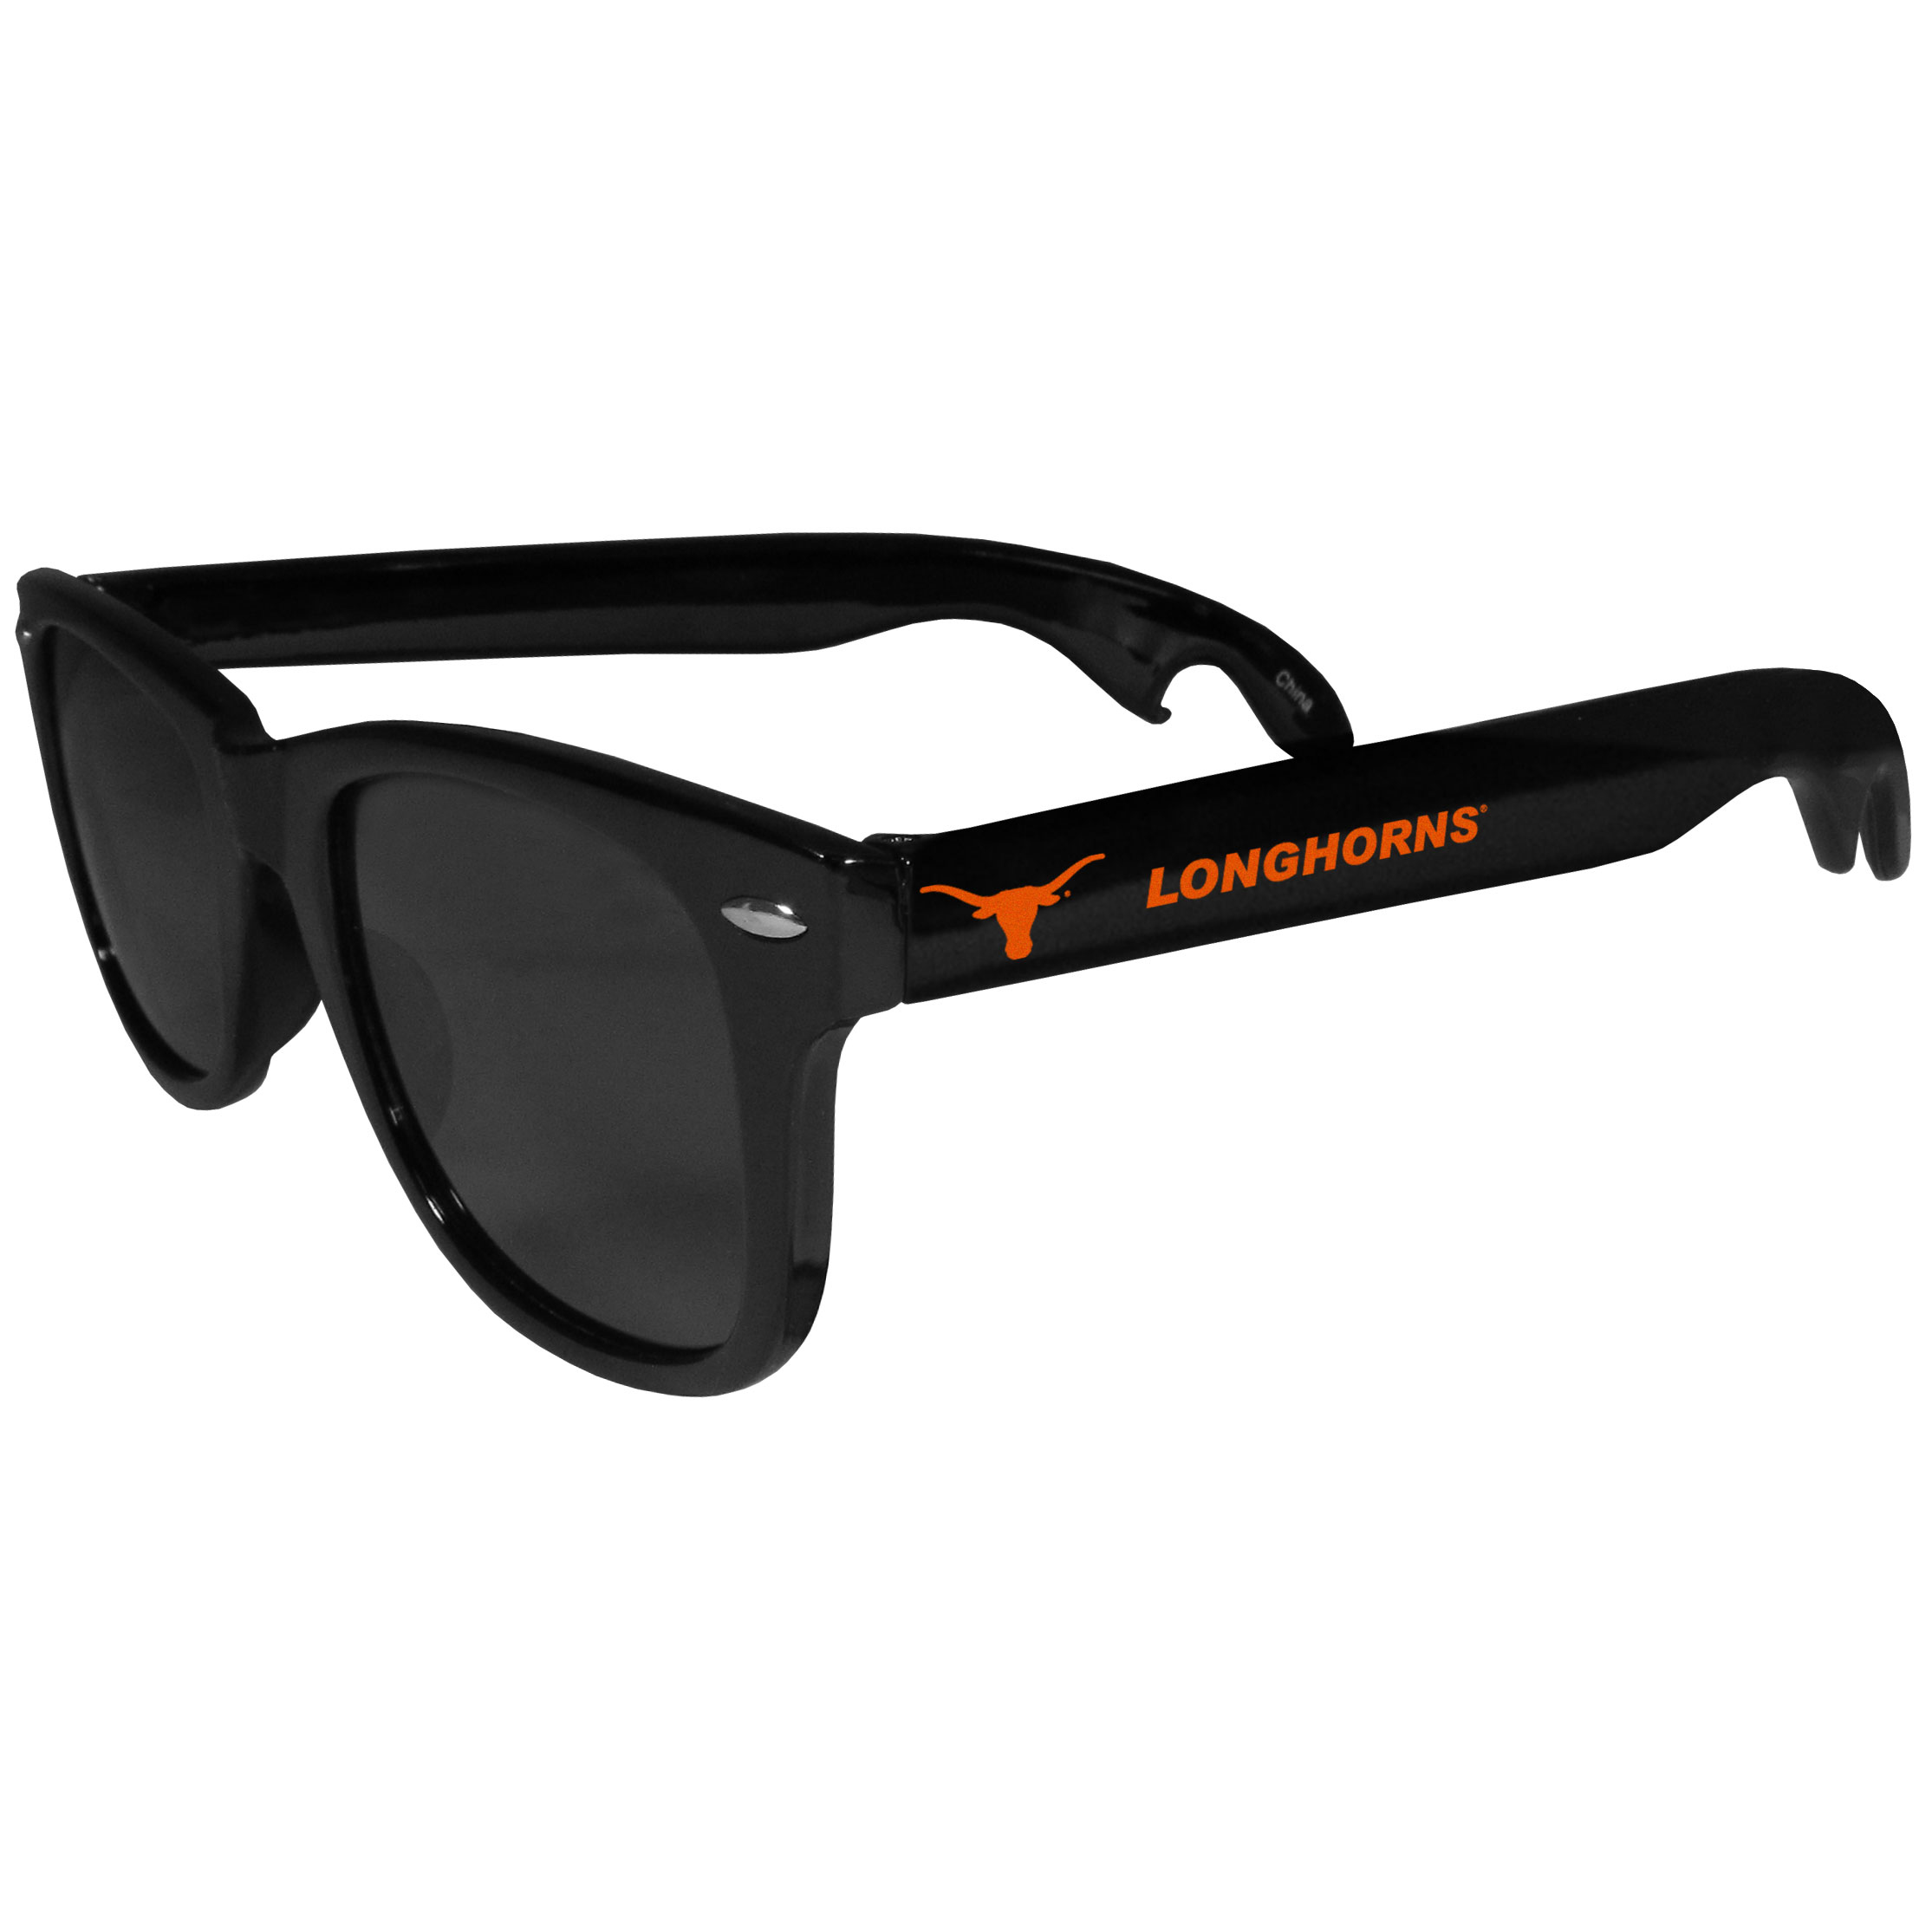 Tennessee Volunteers Beachfarer Bottle Opener Sunglasses - Seriously, these sunglasses open bottles! Keep the party going with these amazing Tennessee Volunteers bottle opener sunglasses. The stylish retro frames feature team designs on the arms and functional bottle openers on the end of the arms. Whether you are at the beach or having a backyard BBQ on game day, these shades will keep your eyes protected with 100% UVA/UVB protection and keep you hydrated with the handy bottle opener arms.